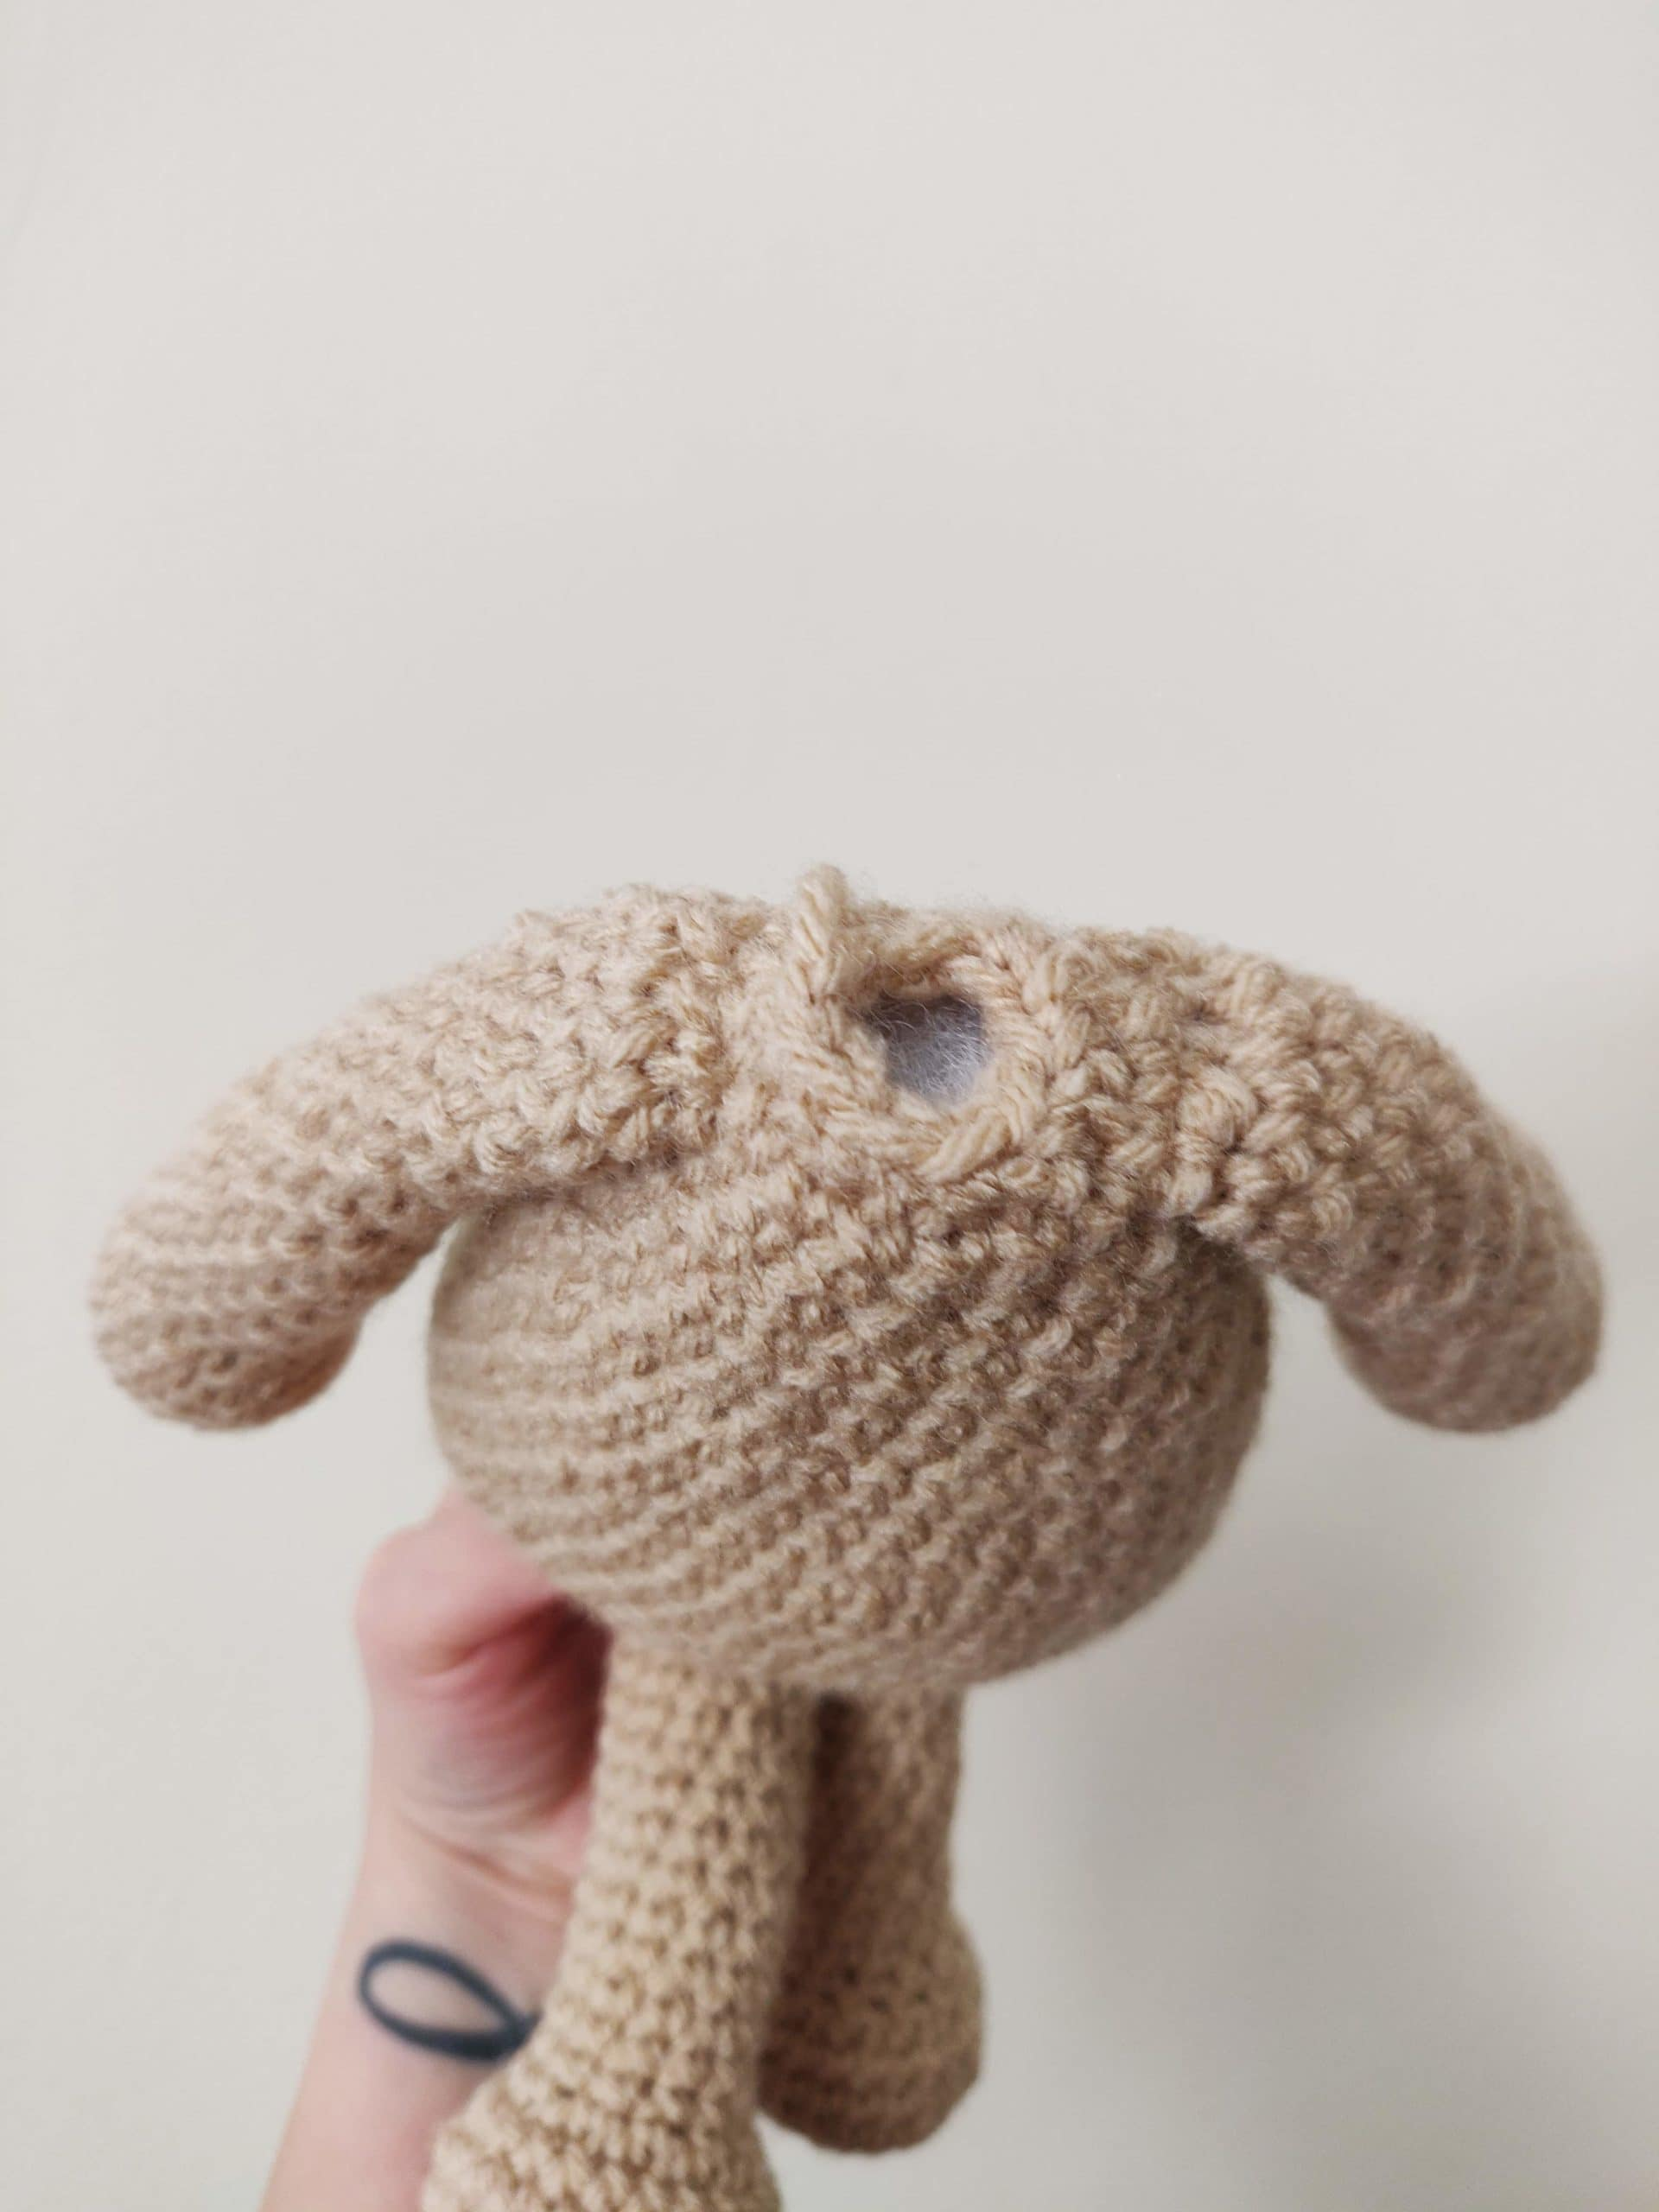 Crochet body of pup with all four limbs.